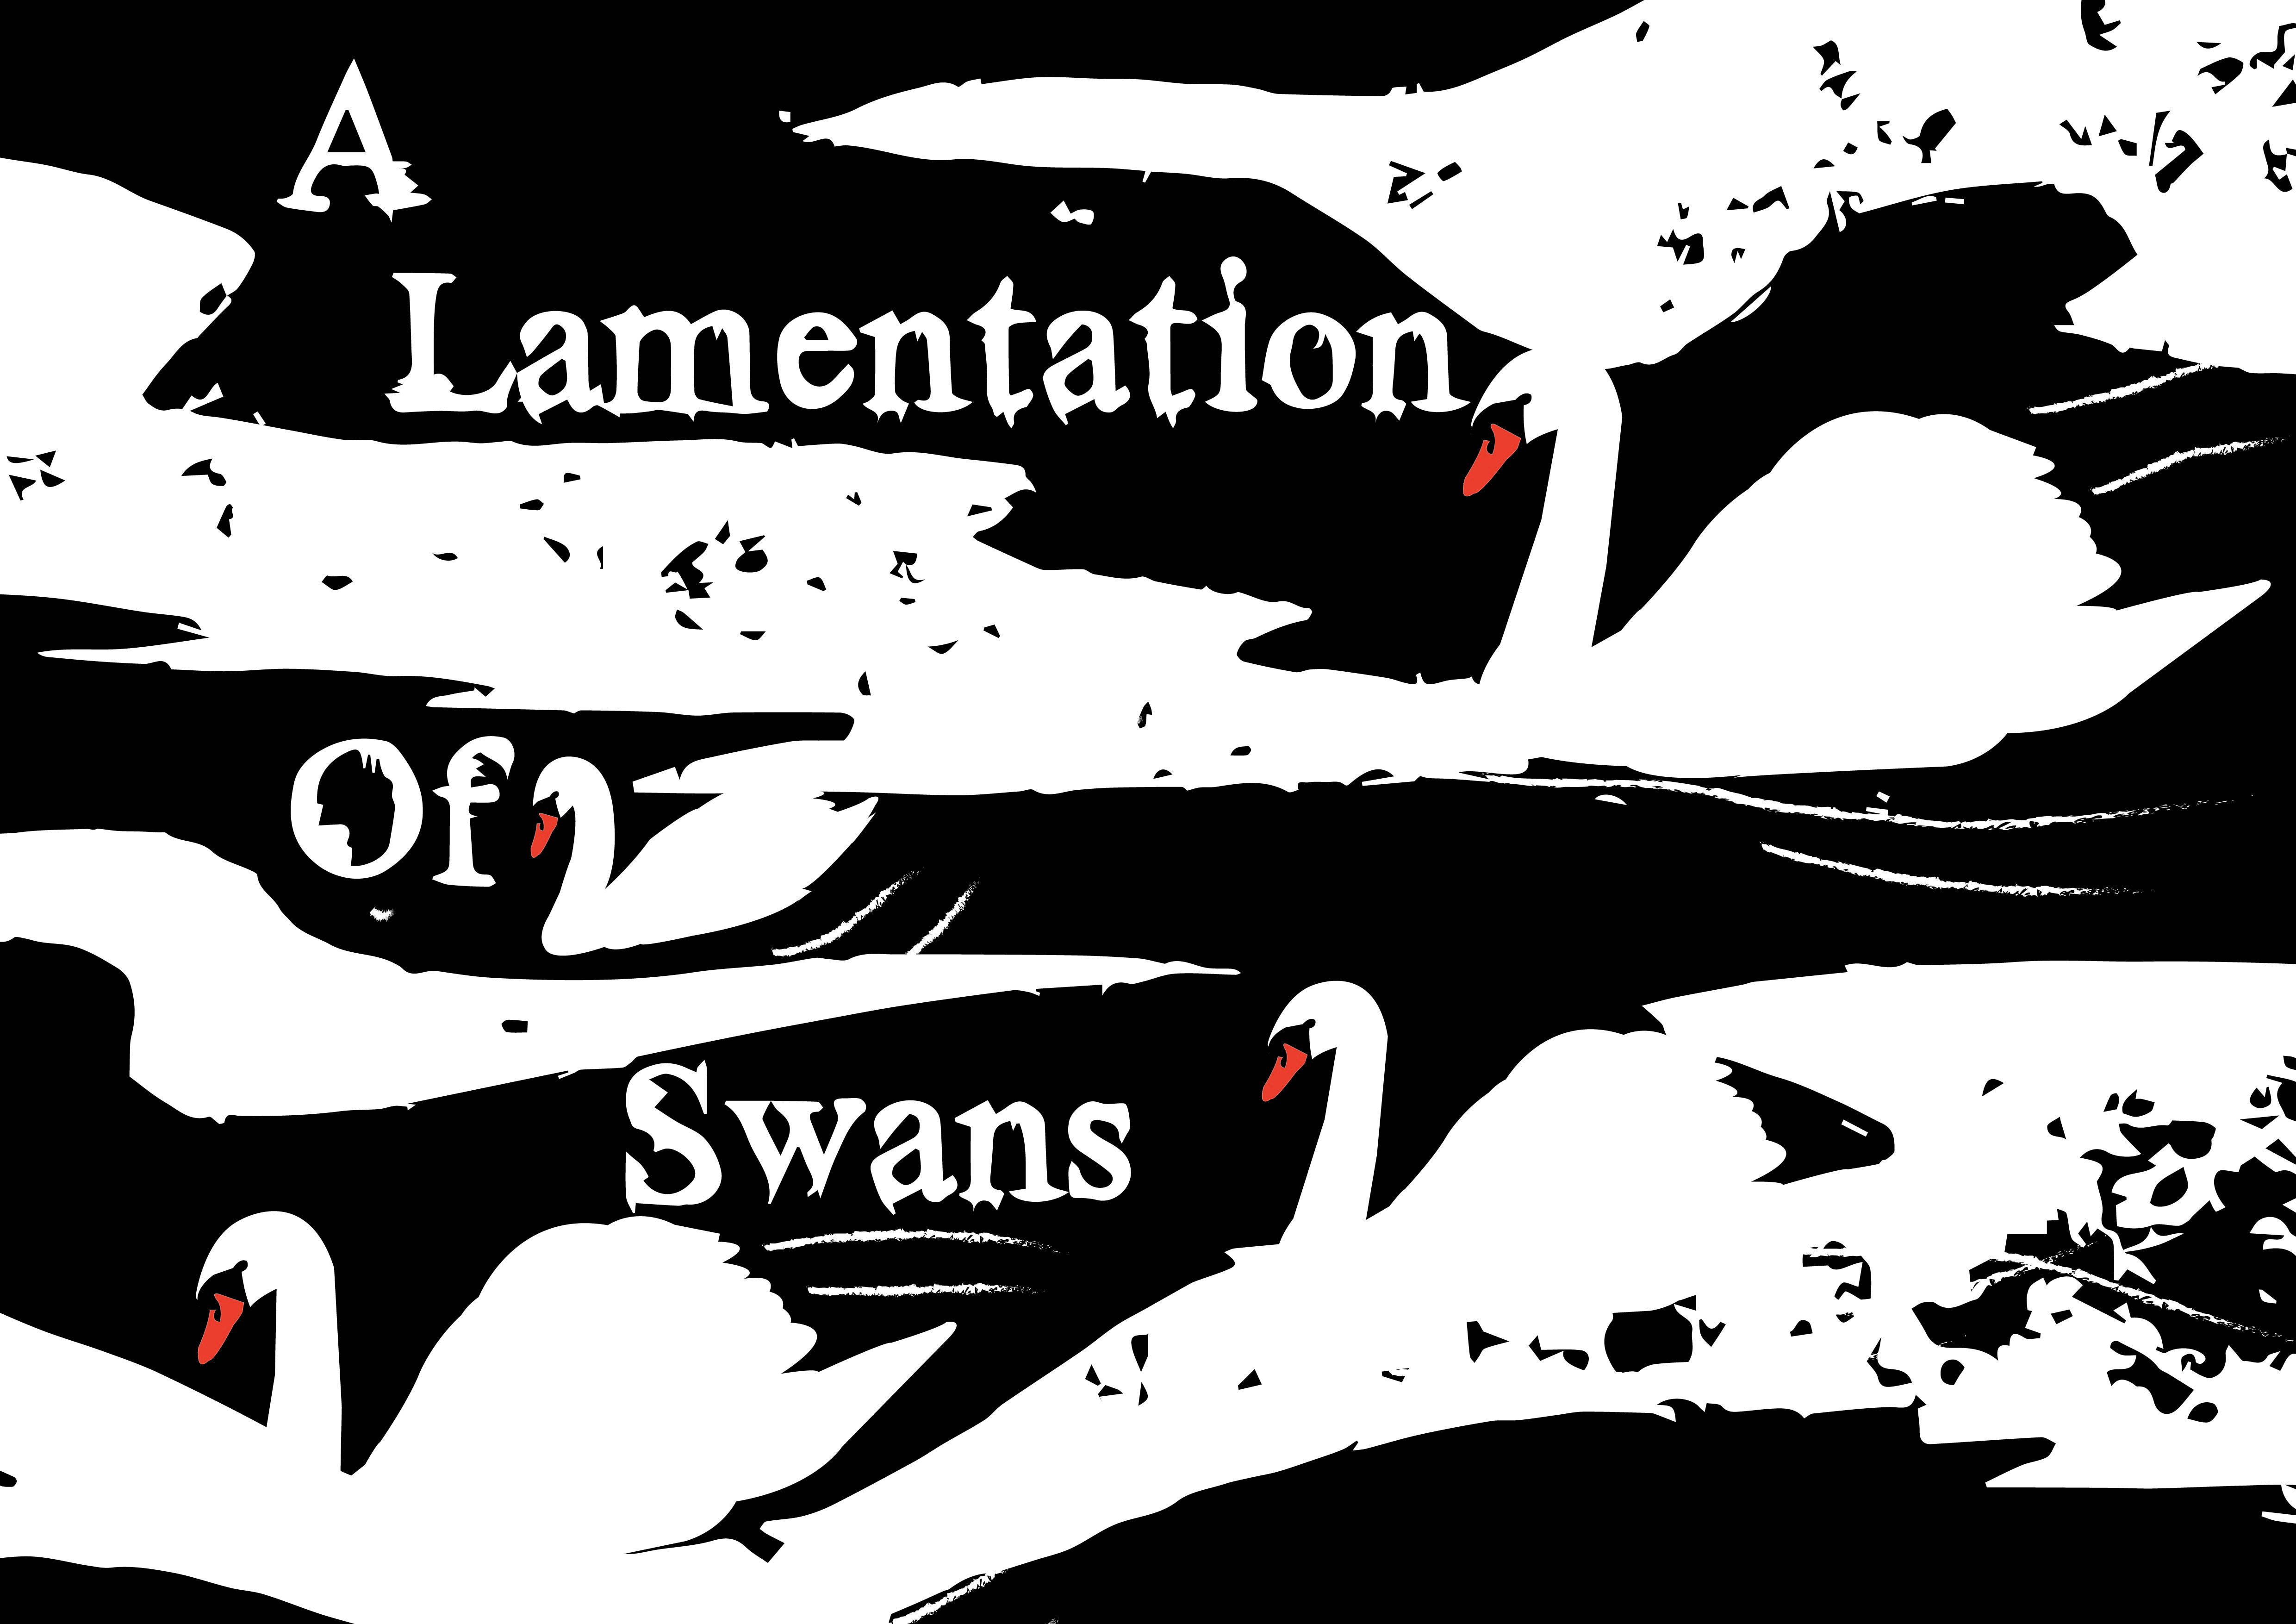 A collective noun illustration of swans. Collective